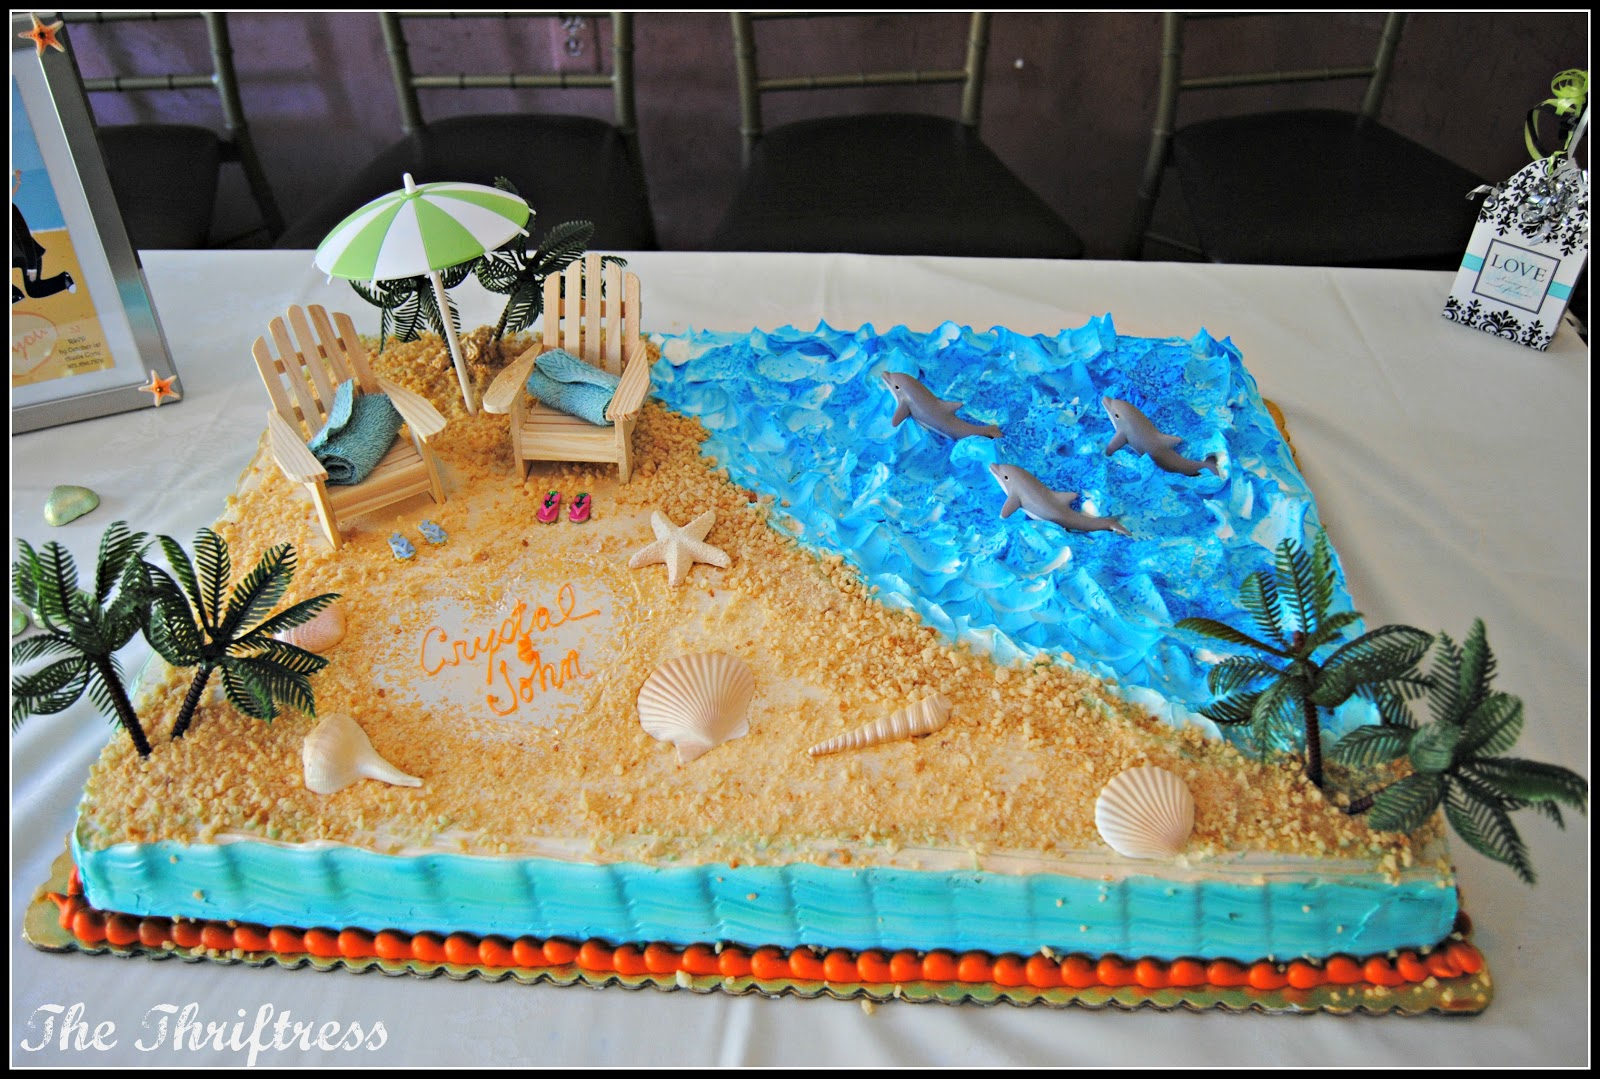 Costco Themed Cake Ideas And Designs